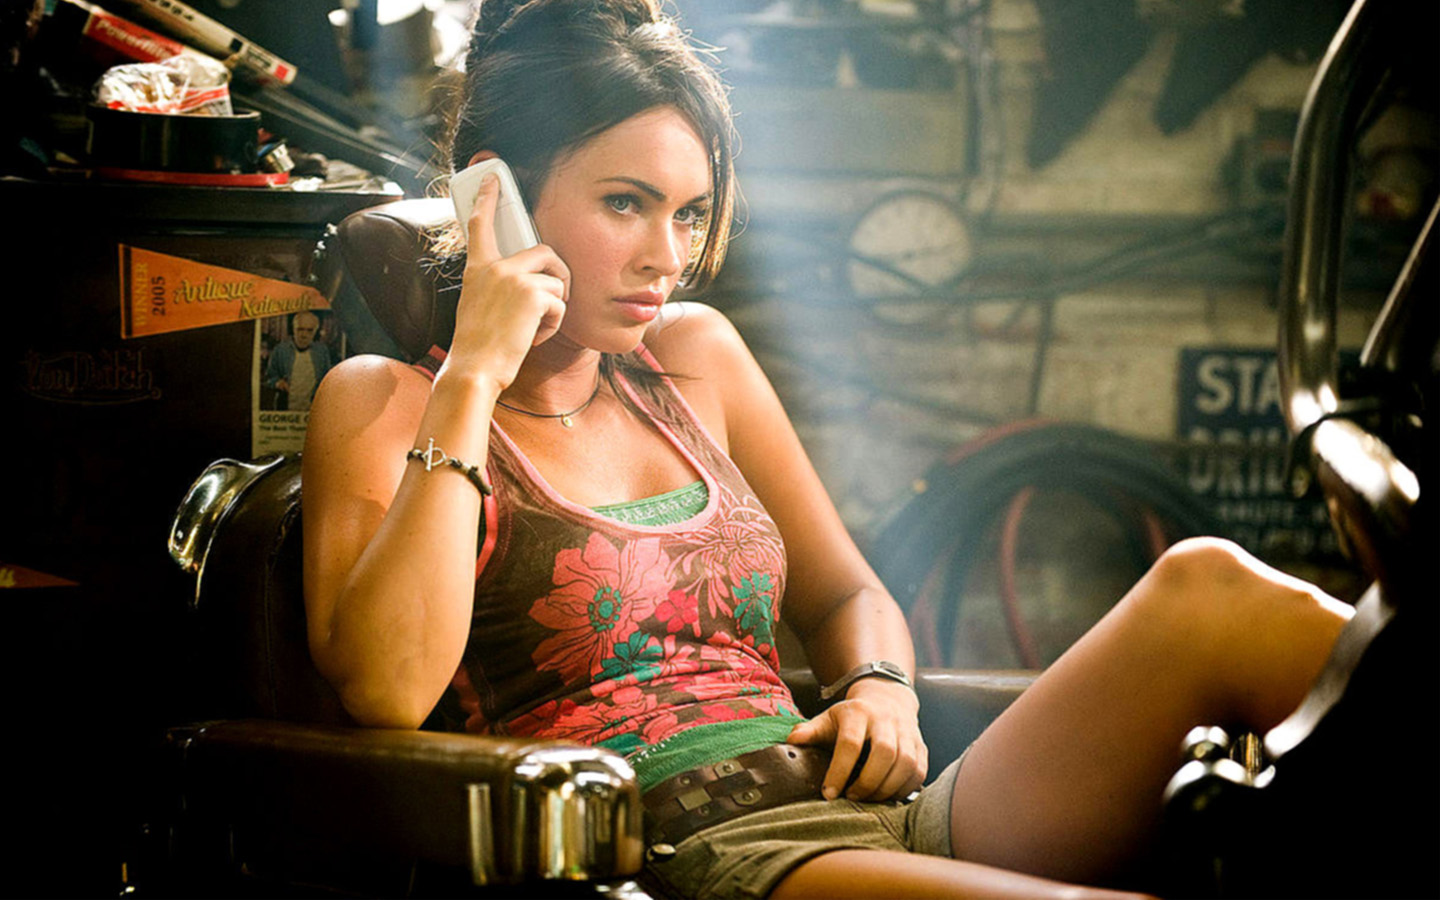 http://2.bp.blogspot.com/-Dsriool98DI/T-G5B18gPlI/AAAAAAAABuc/jfS5P5zvD8Q/s1600/Megan+Fox+HD+Wallpapers+1.jpg